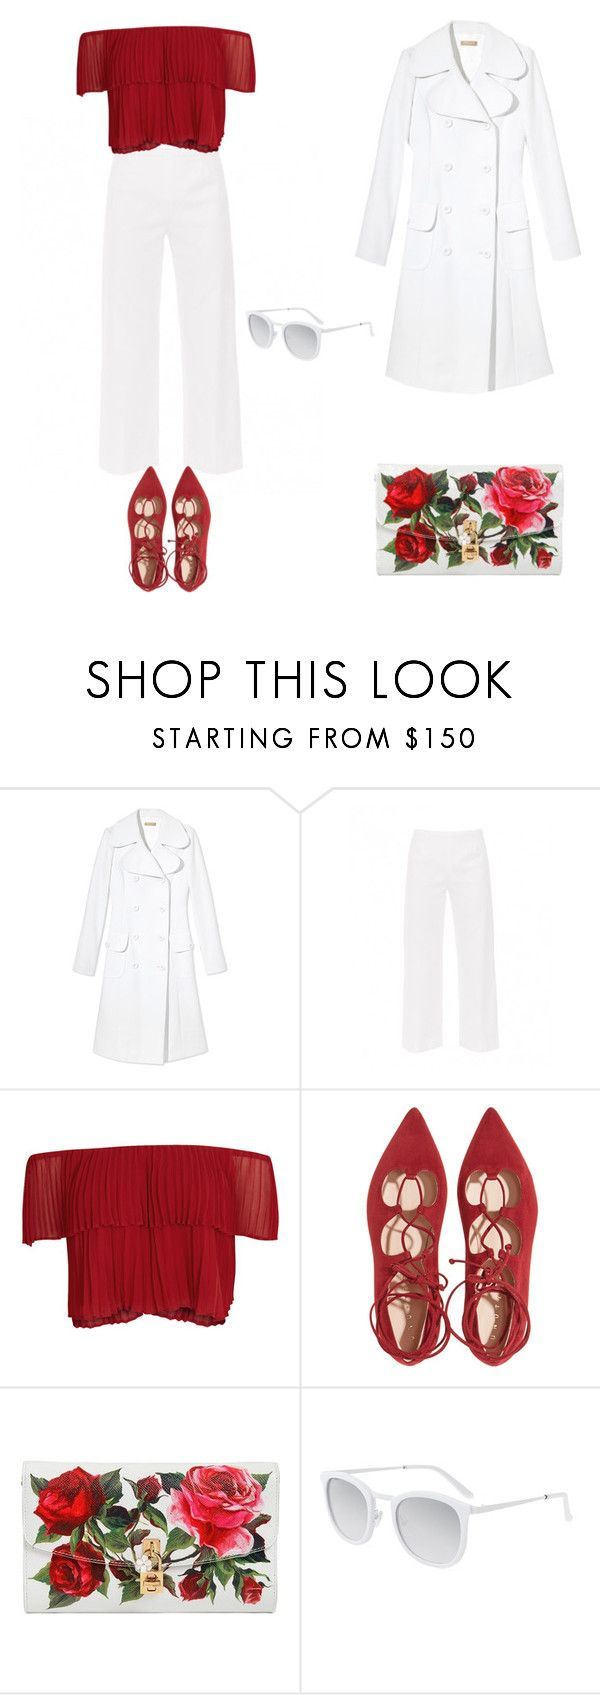 """you are so blod red&white"" by star-kwt ❤ liked on Polyvore featuring Michael Kors, Piazza Sempione, Keepsake the Label, Dolce&Gabbana and Smoke x Mirrors"